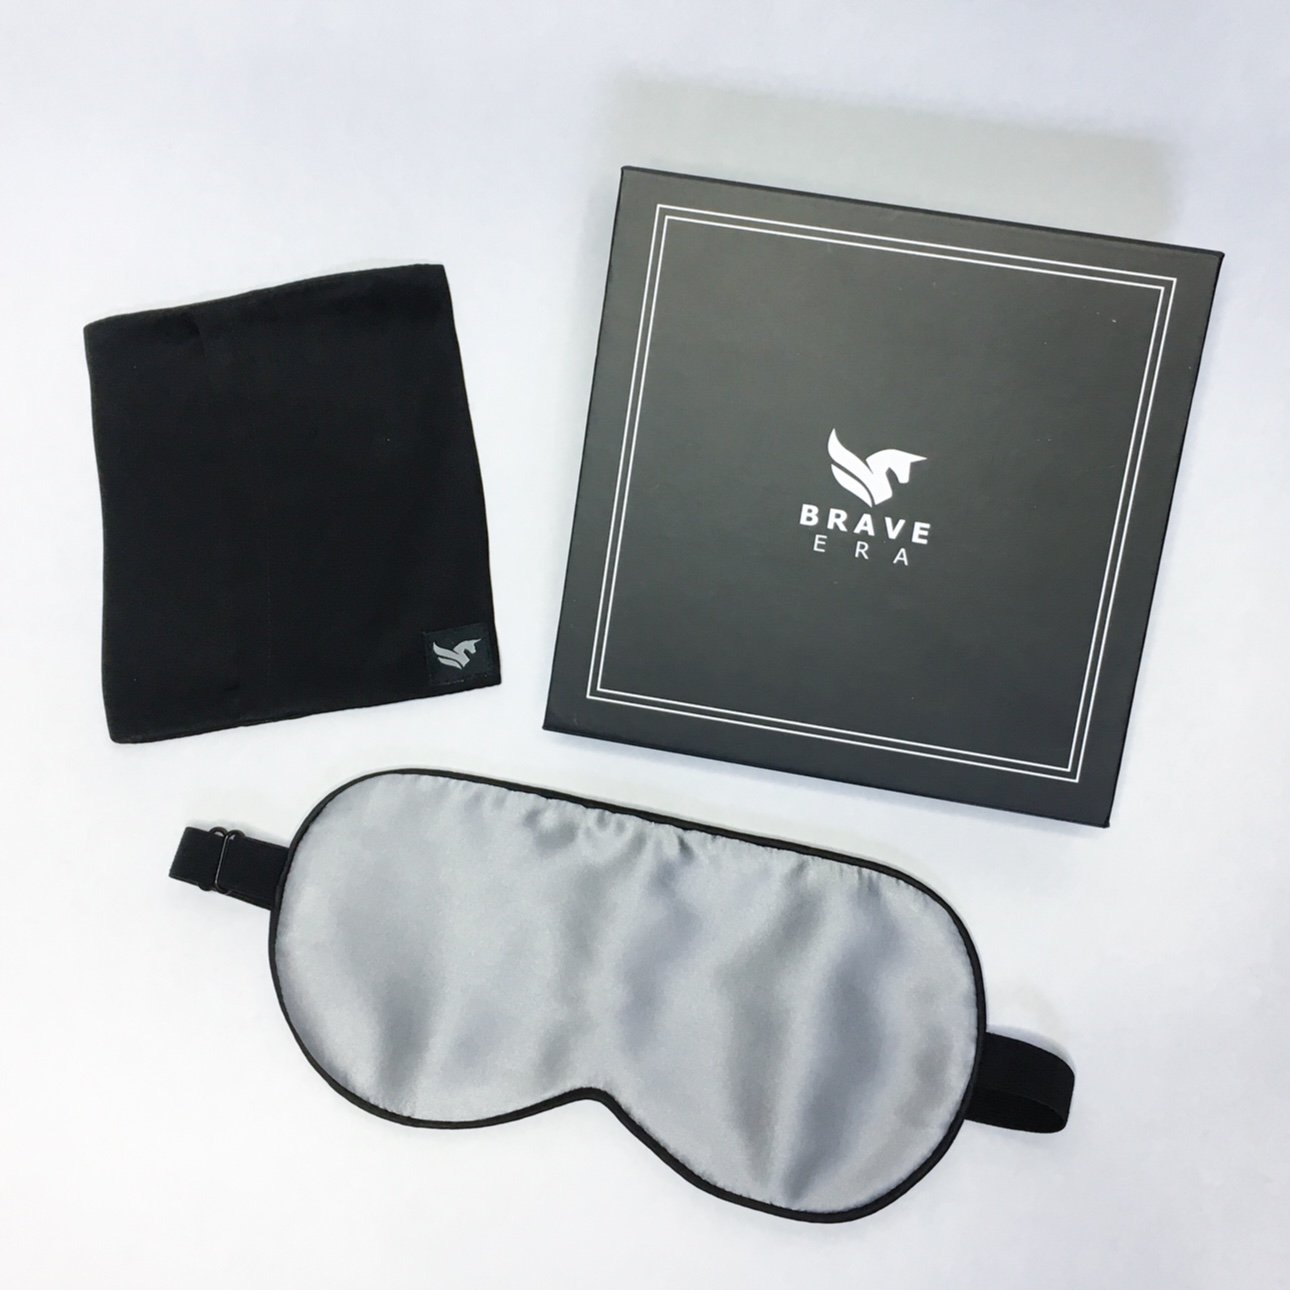 BRAVE ERA 100% Mulberry Silk Hypoallergenic Sleep Mask with Compact Travel Pouch and Gift Box (Sharkskin Gray)